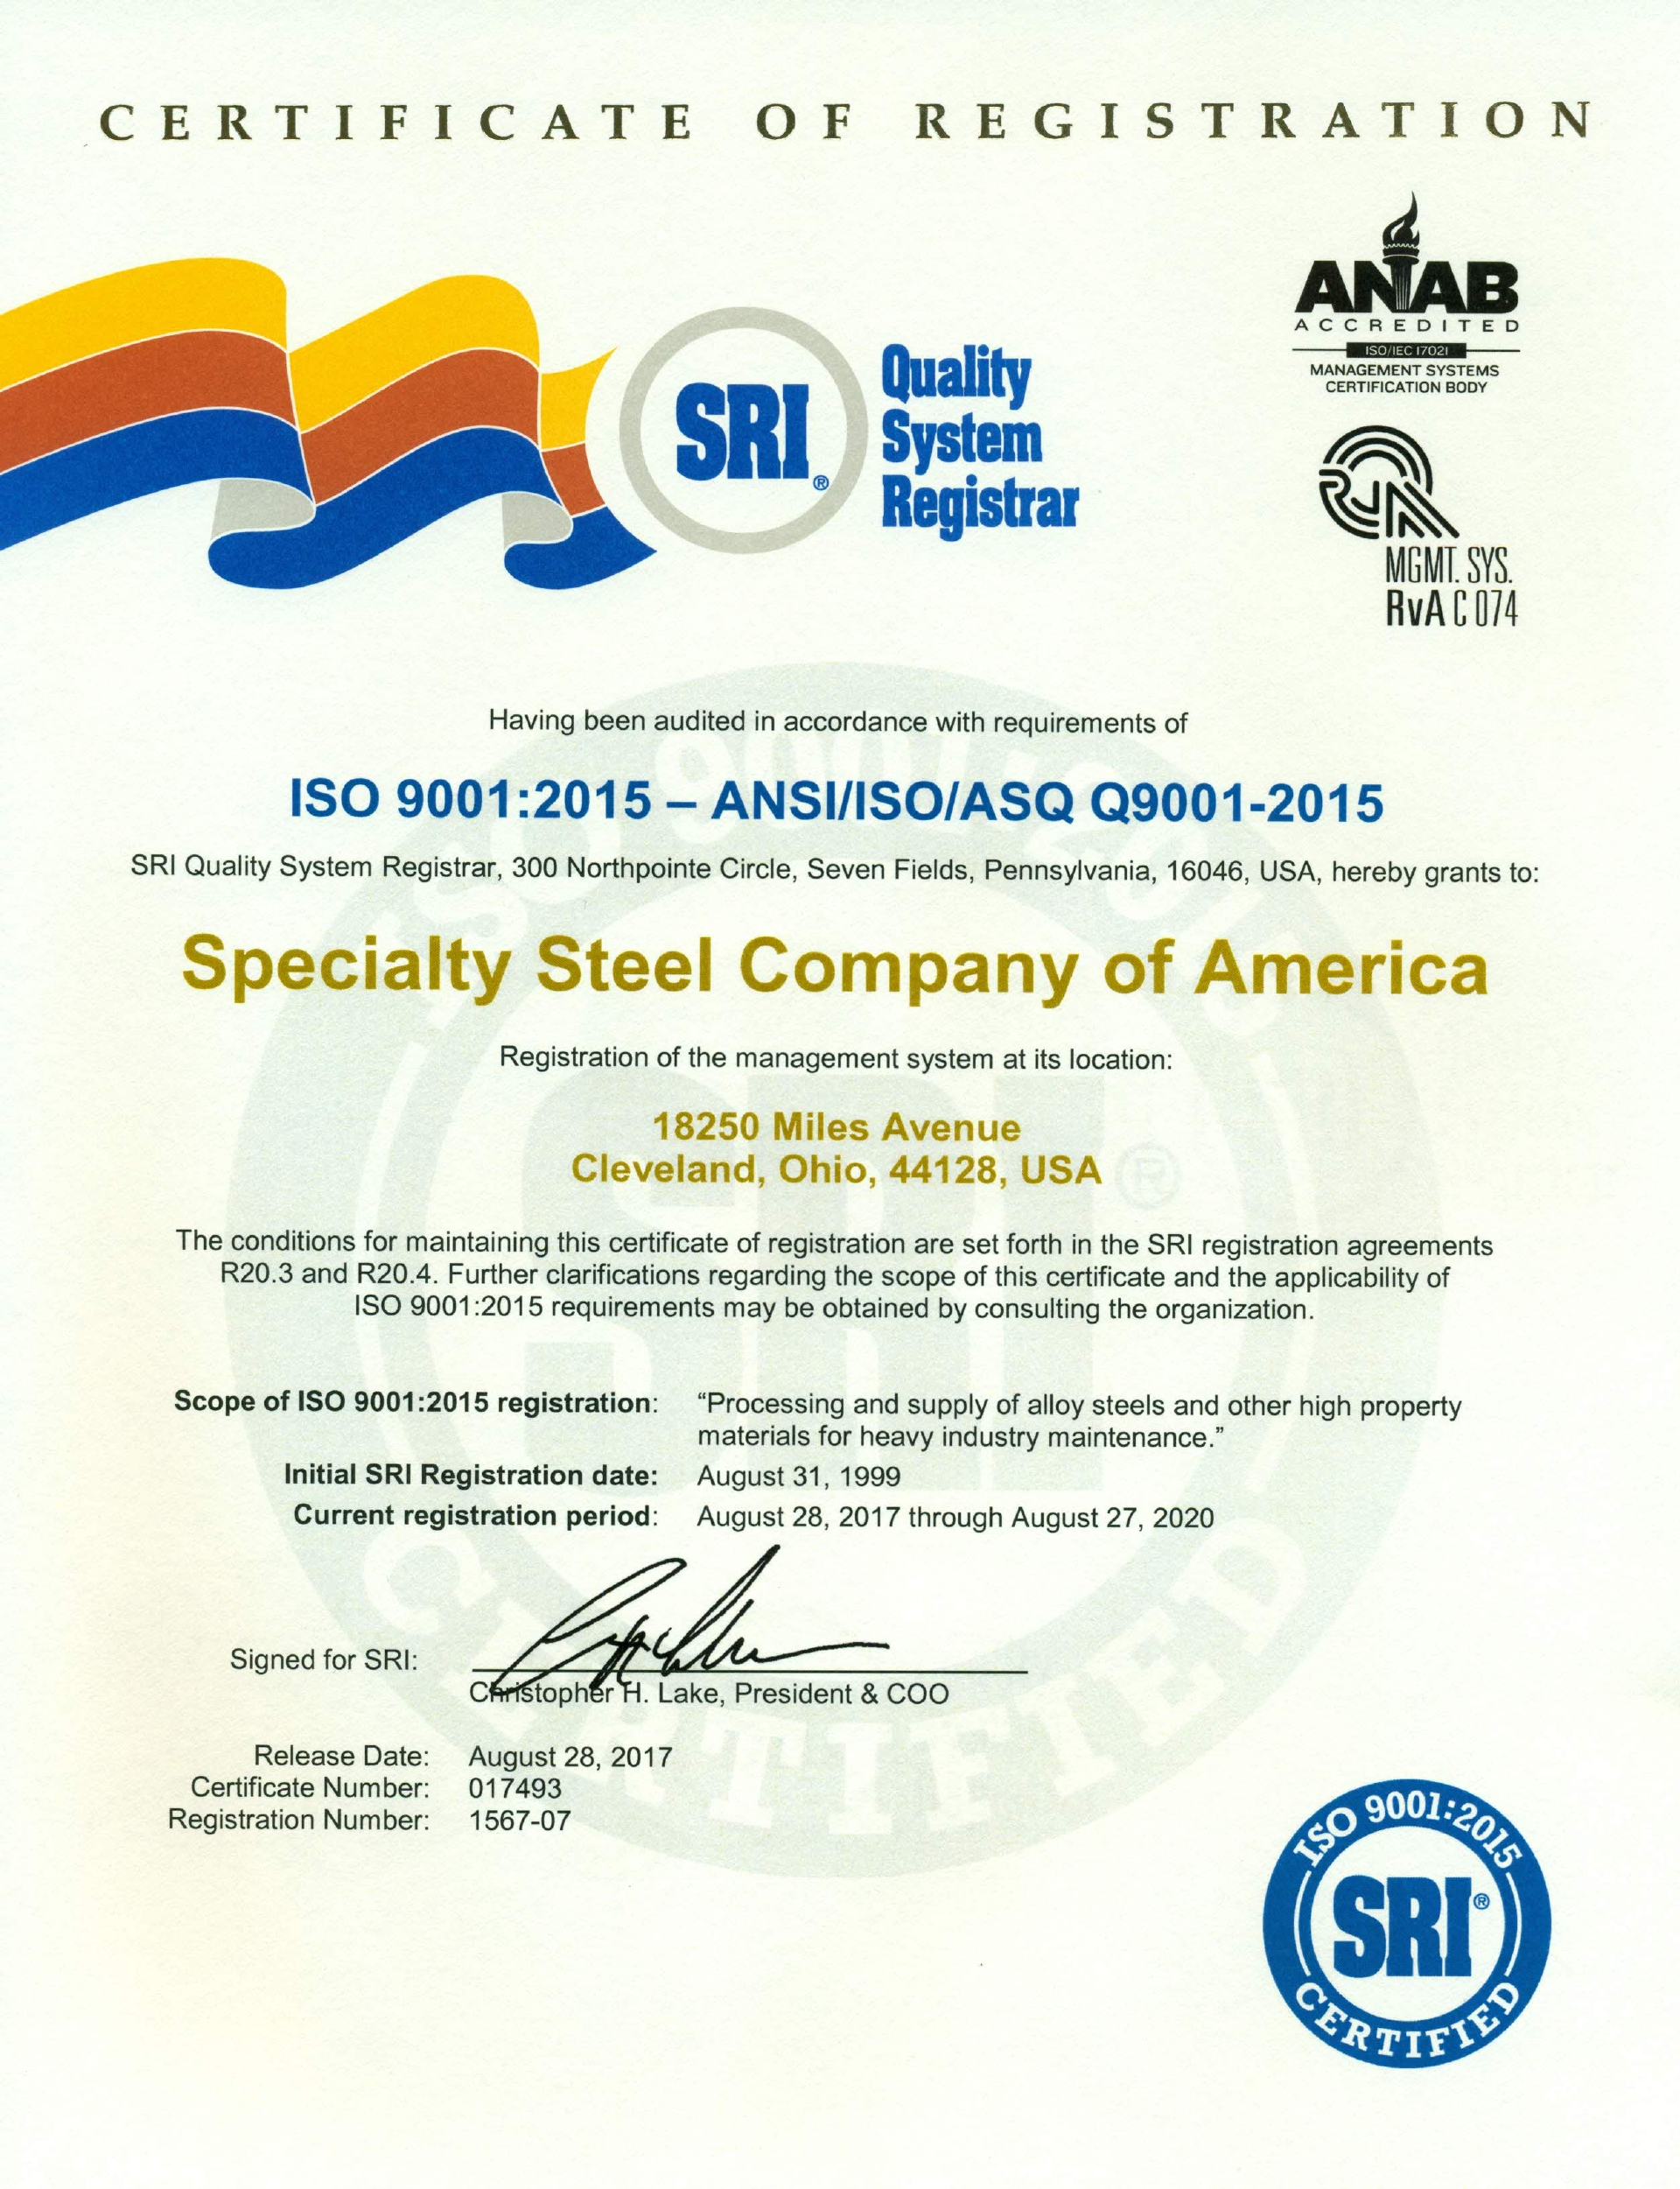 ISO Certification for Specialty Steel Company